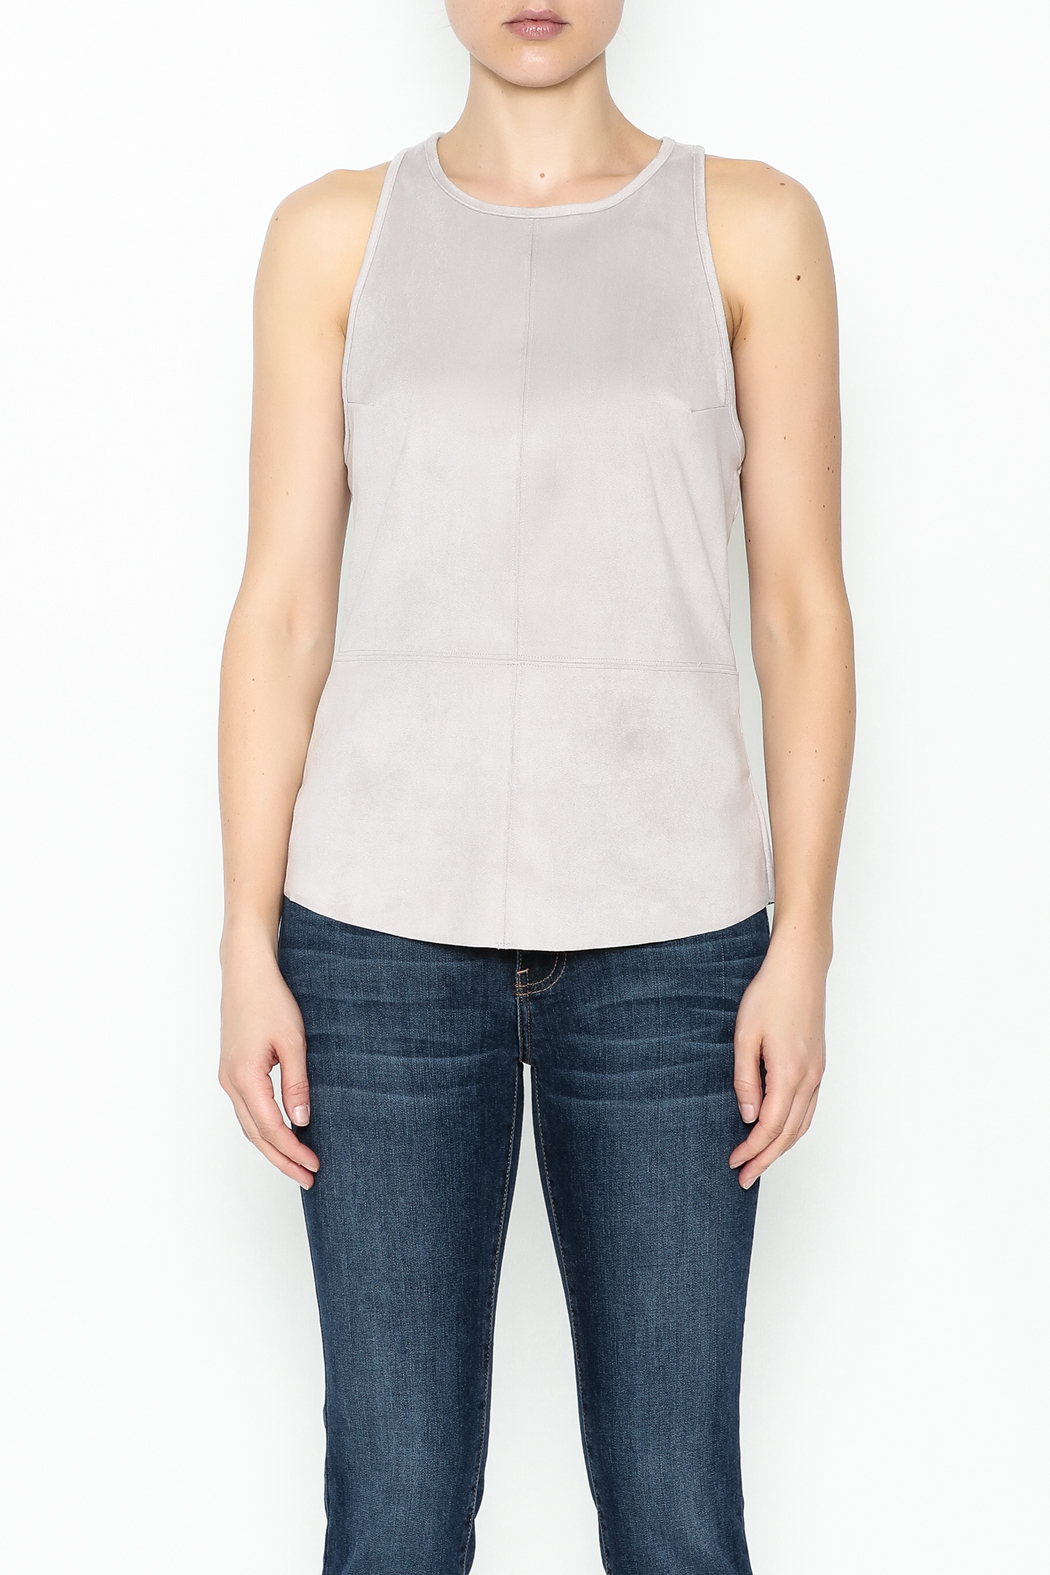 Gentle Fawn Faux Suede Top - Front Full Image